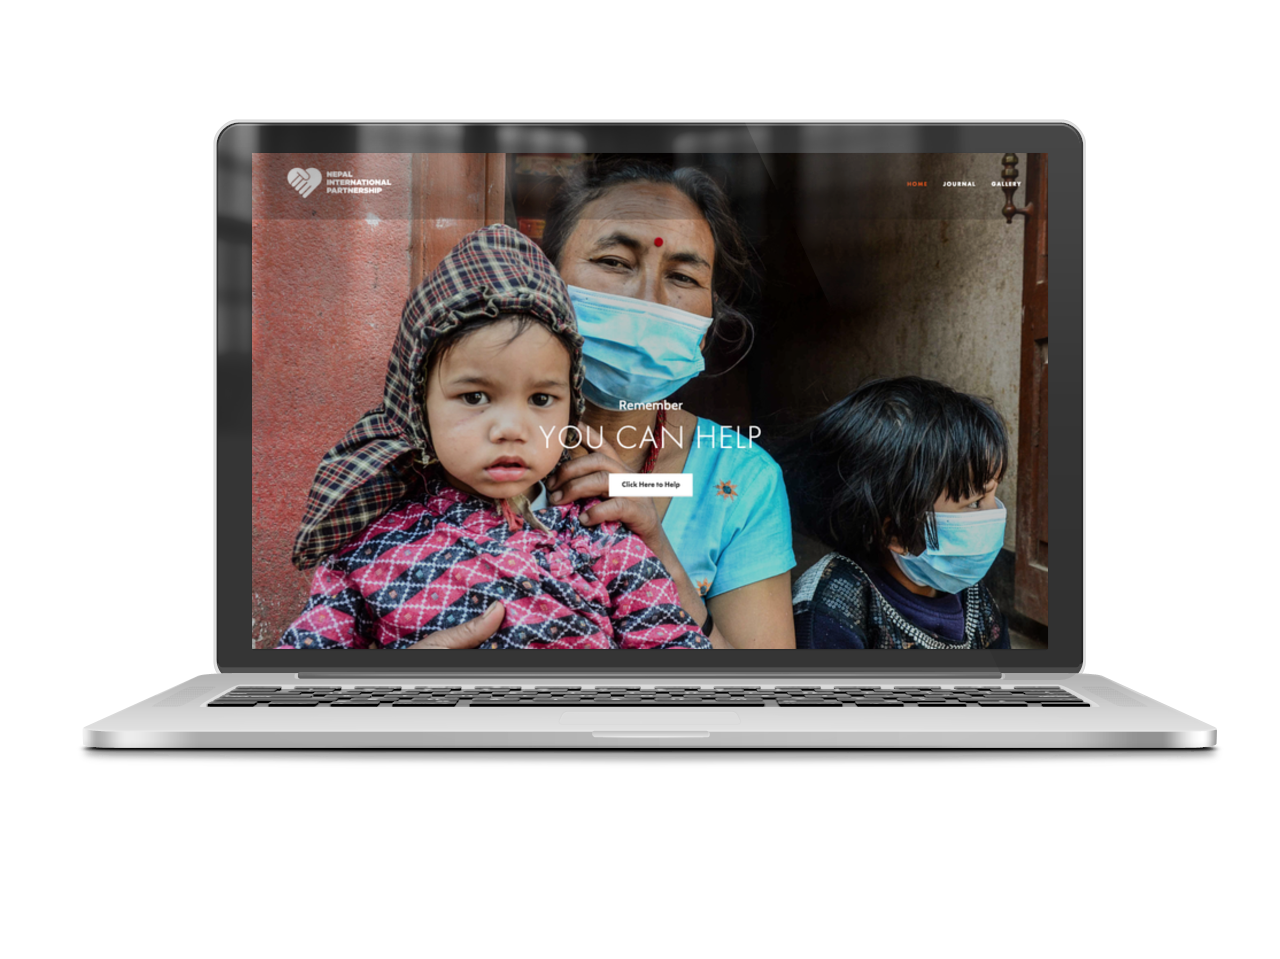 Nepal Website Design Charity Free